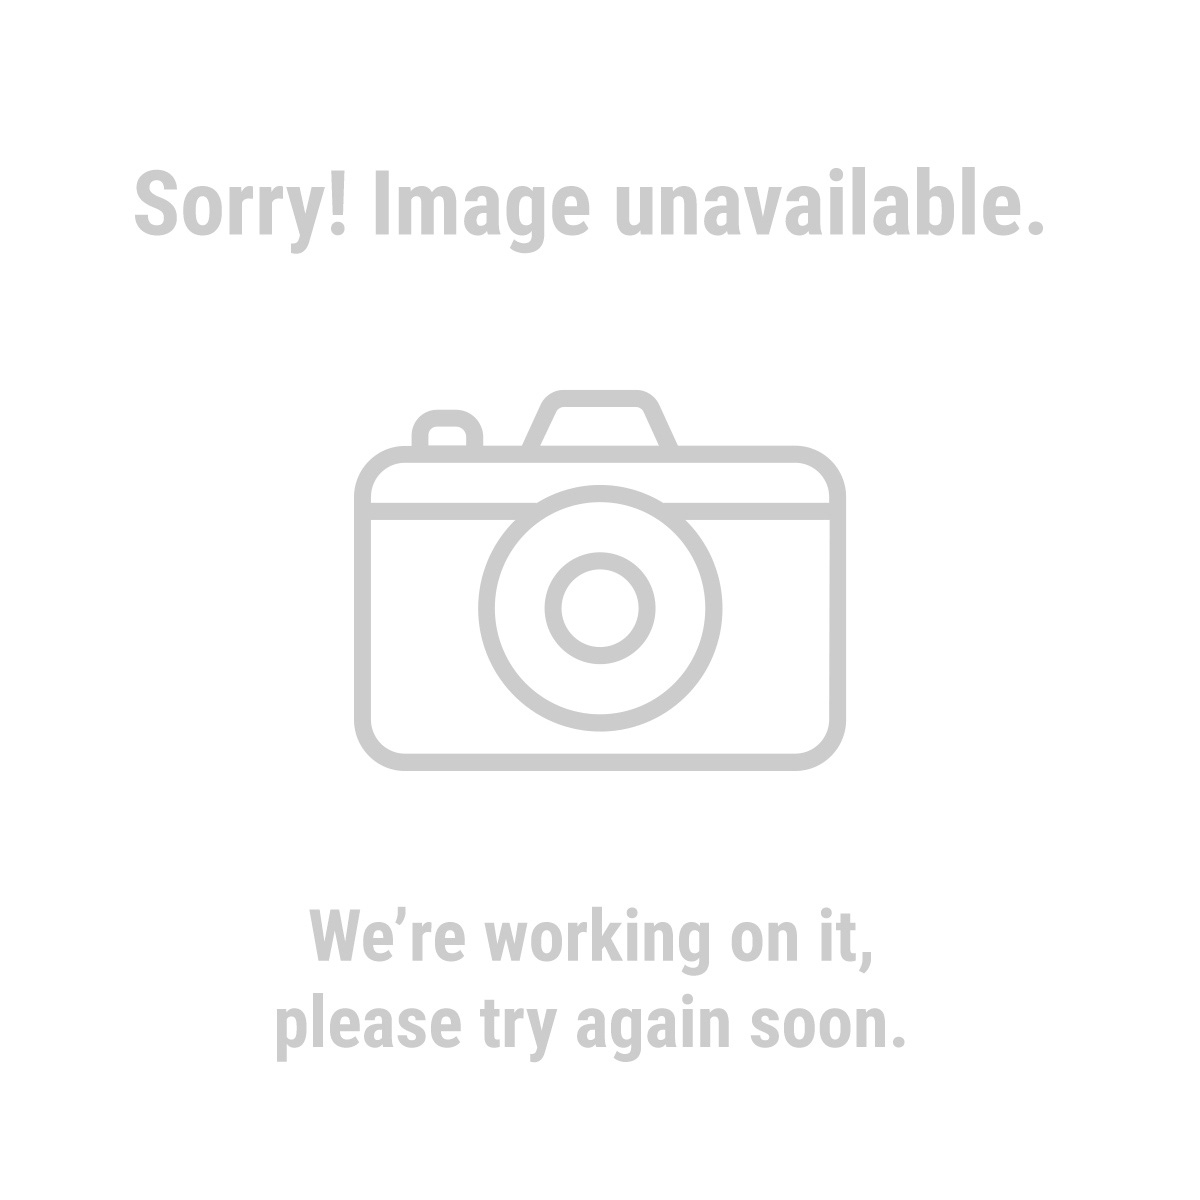 Badland® 61876 2000 lb. Marine Electric Winch